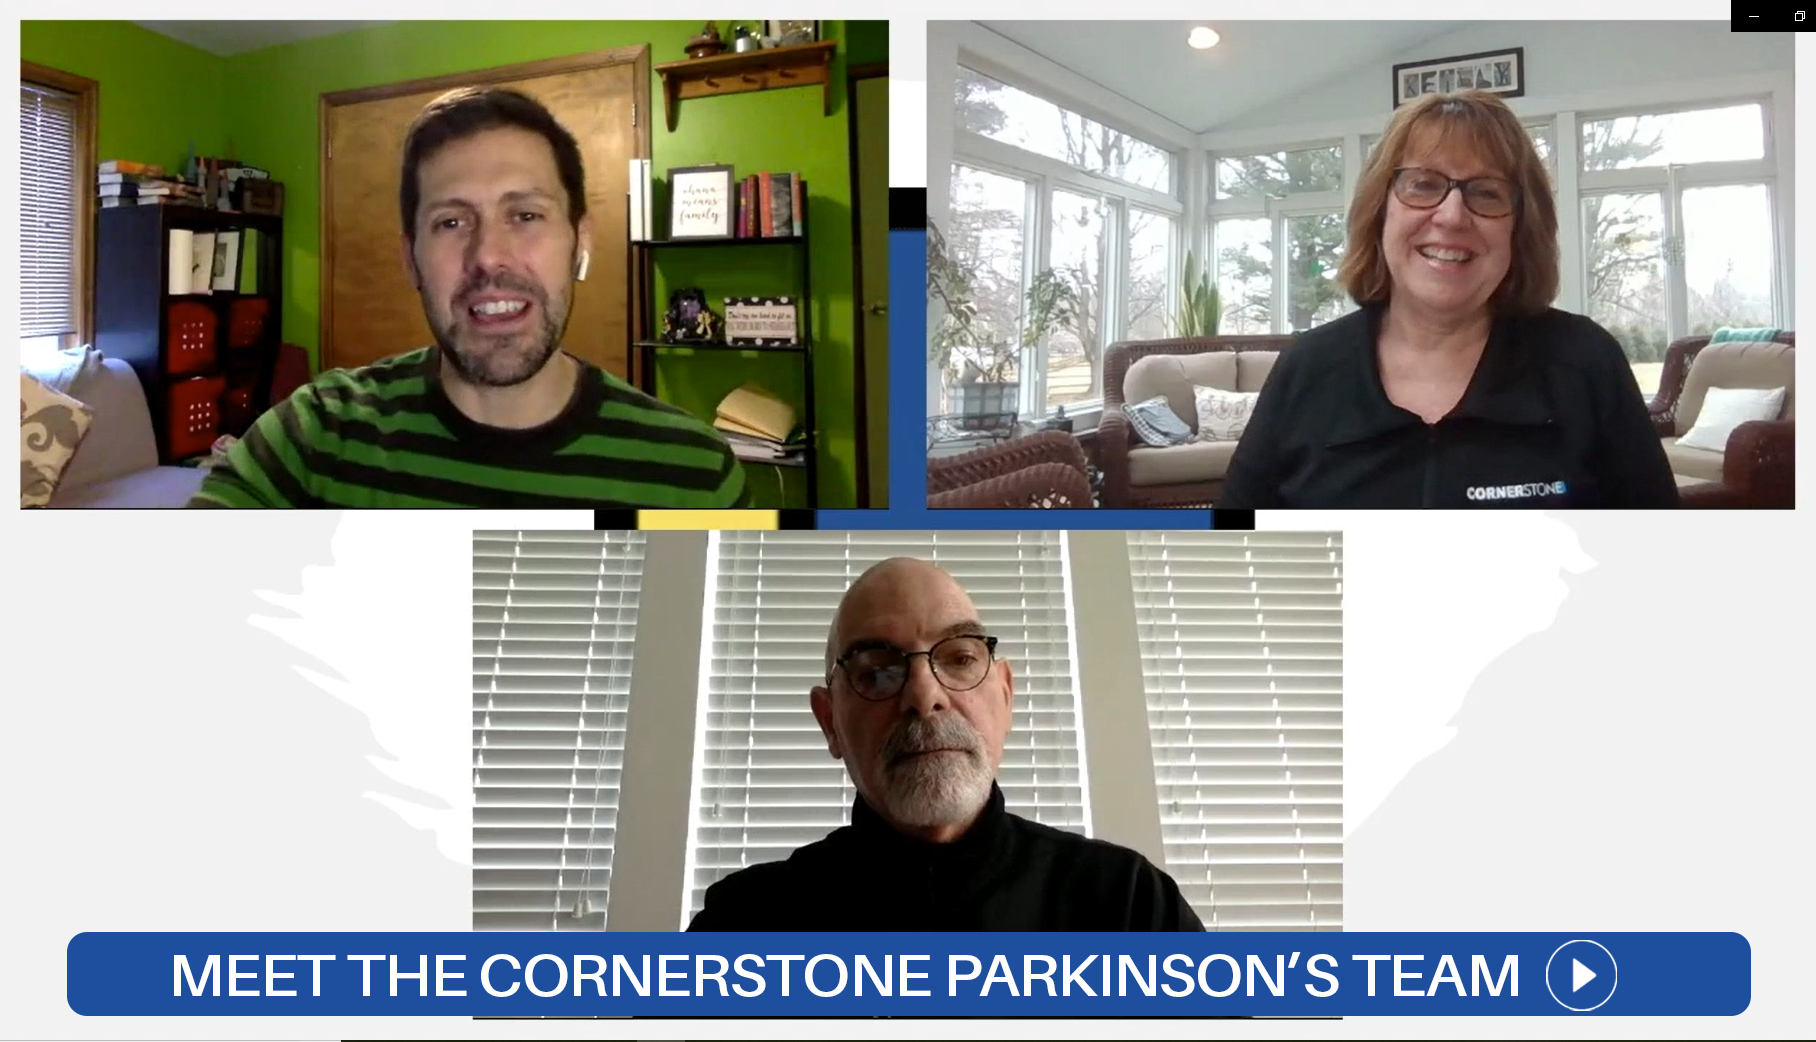 Meet the Parkinson's Fit team at Cornerstone in this great interview style video.